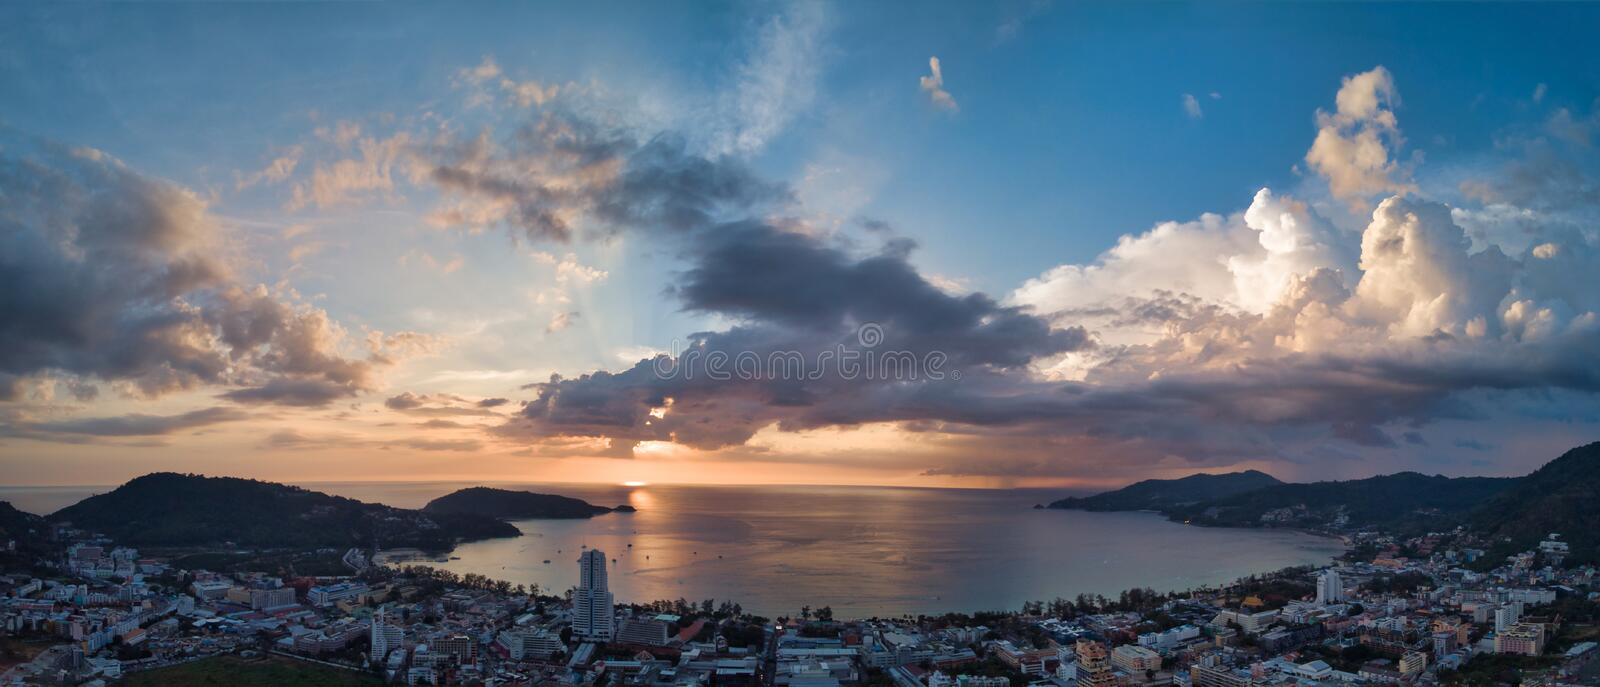 Thailand Phuket Patong bay sunset panorama aerial view stock image